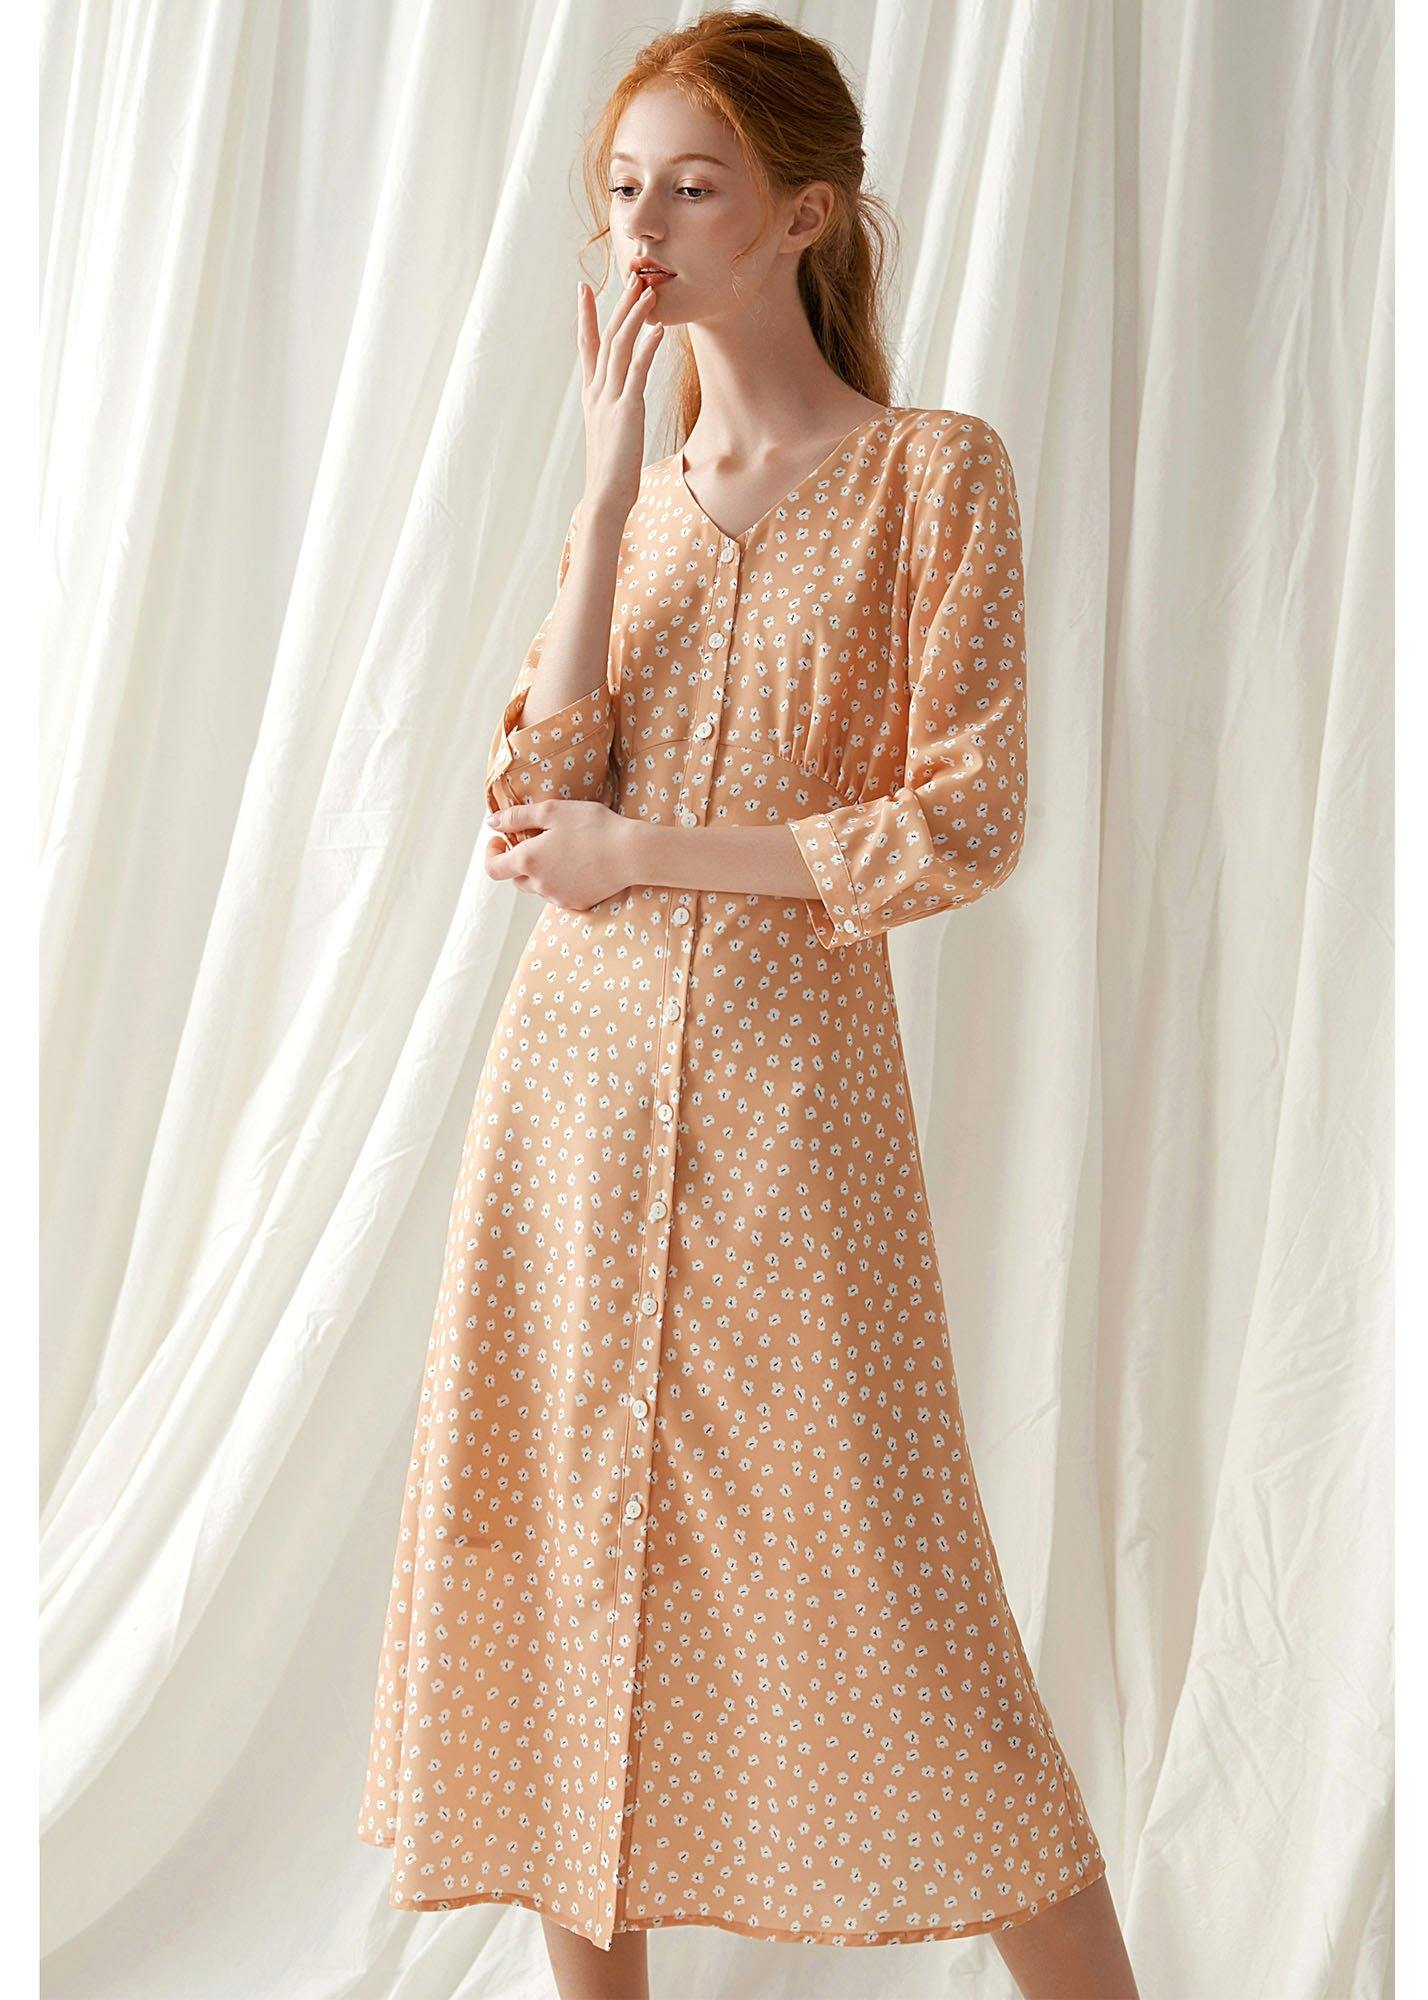 French light orange floral blended outfit tie waist Traveling fall Dresses